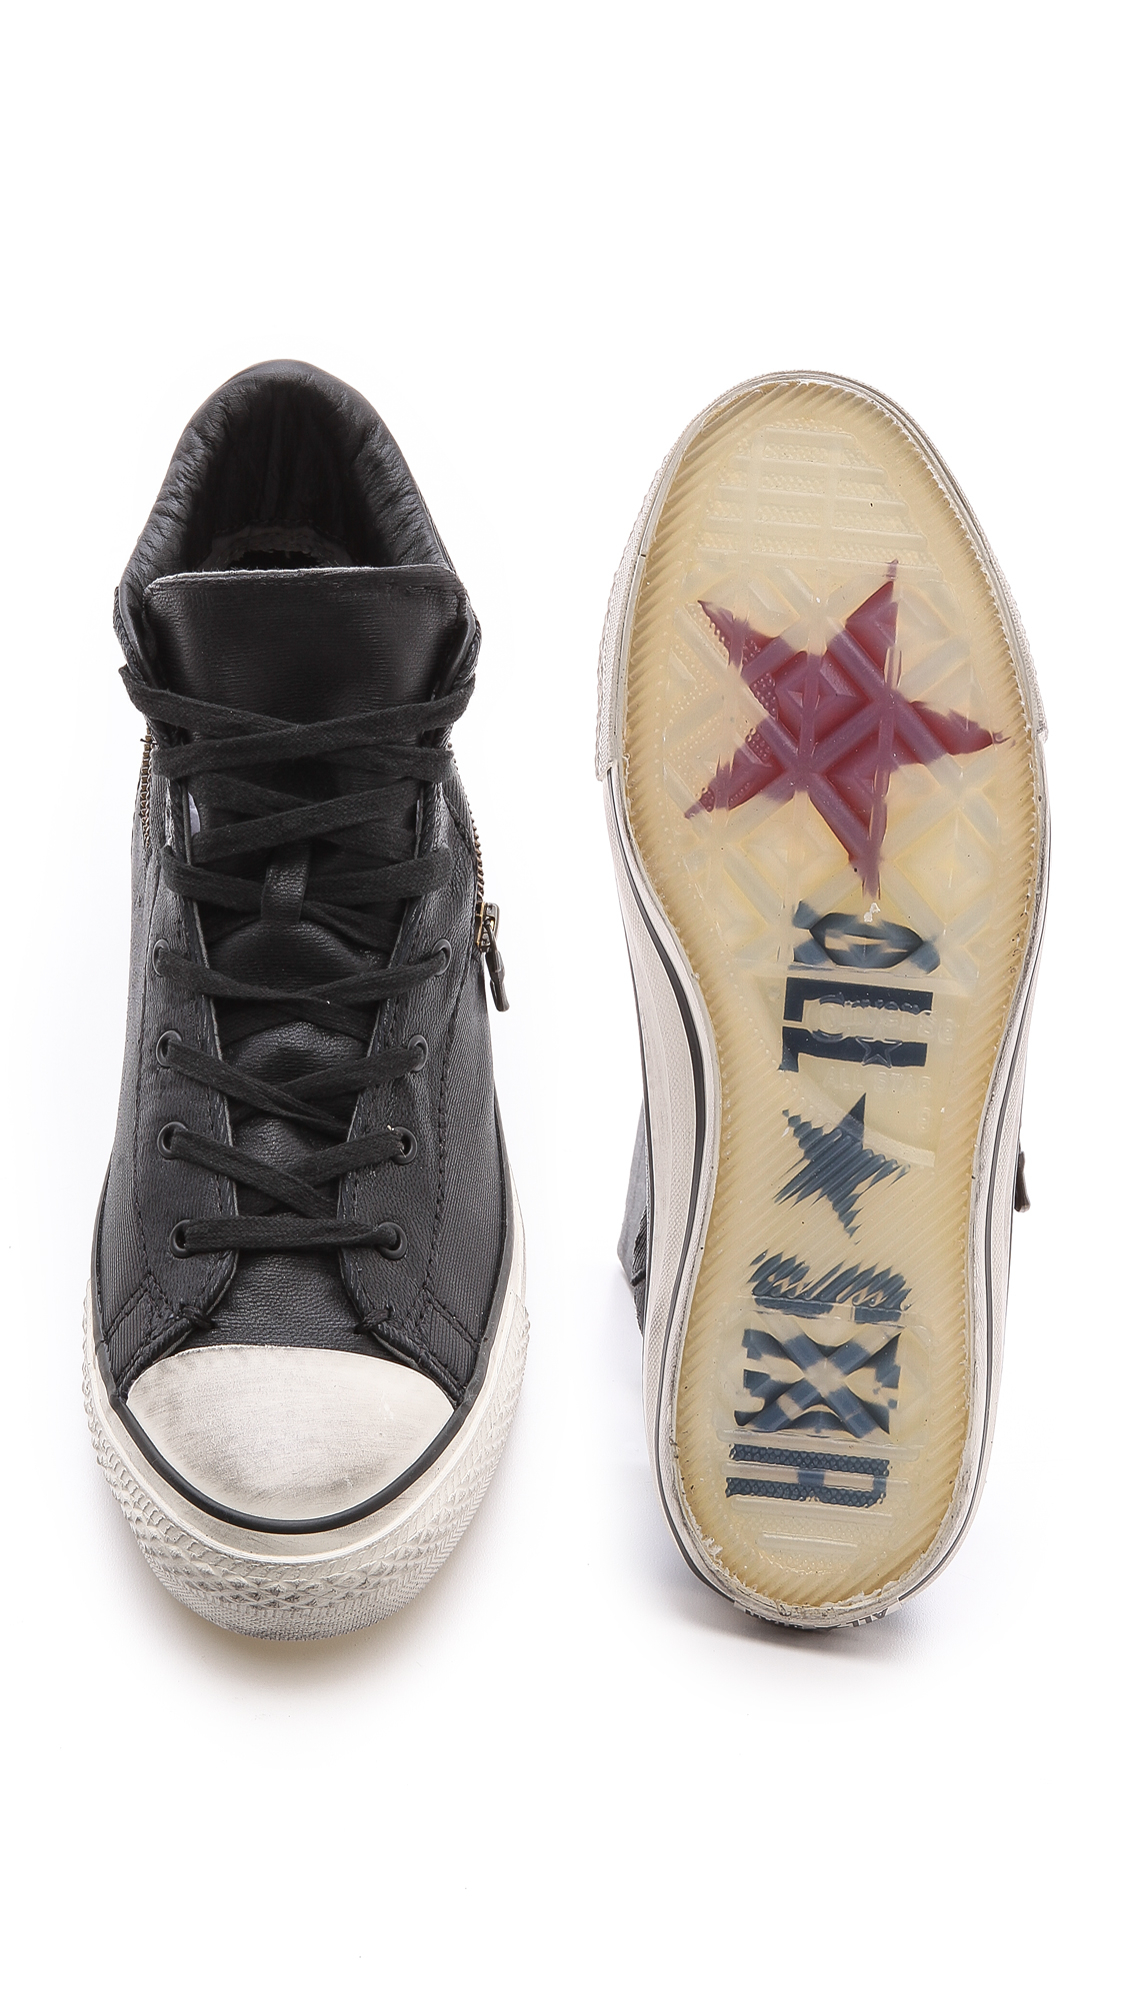 df6879f849fd ... cheapest lyst converse jv all star zip sneakers in black for men 94866  6fbbd